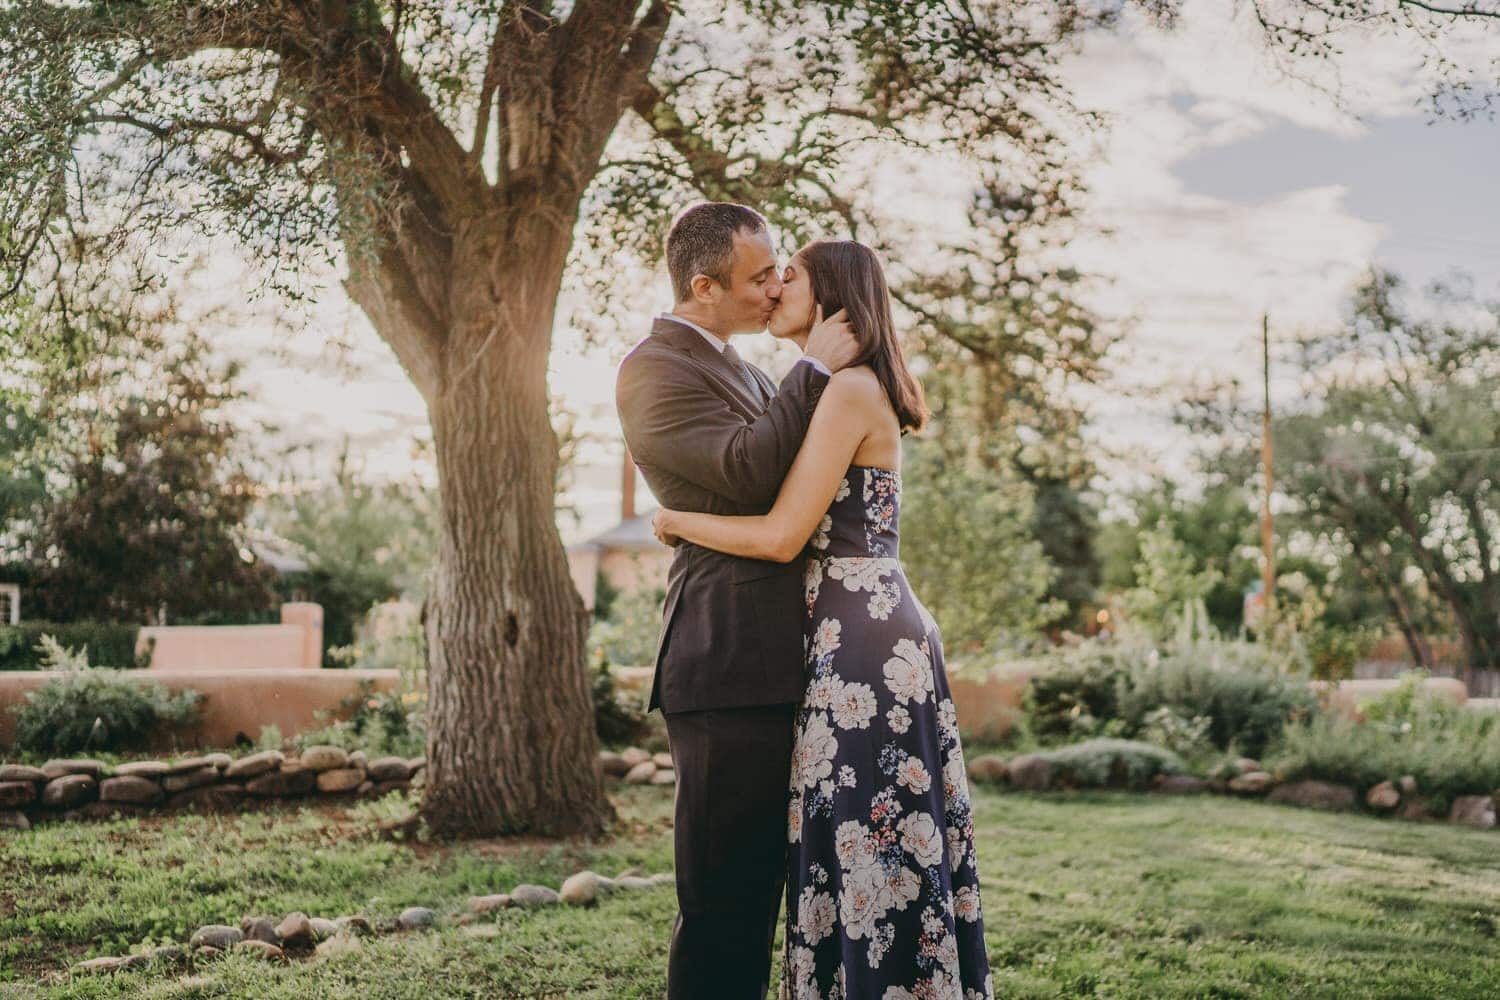 Newlyweds kissing in a garden in Santa Fe, New Mexico